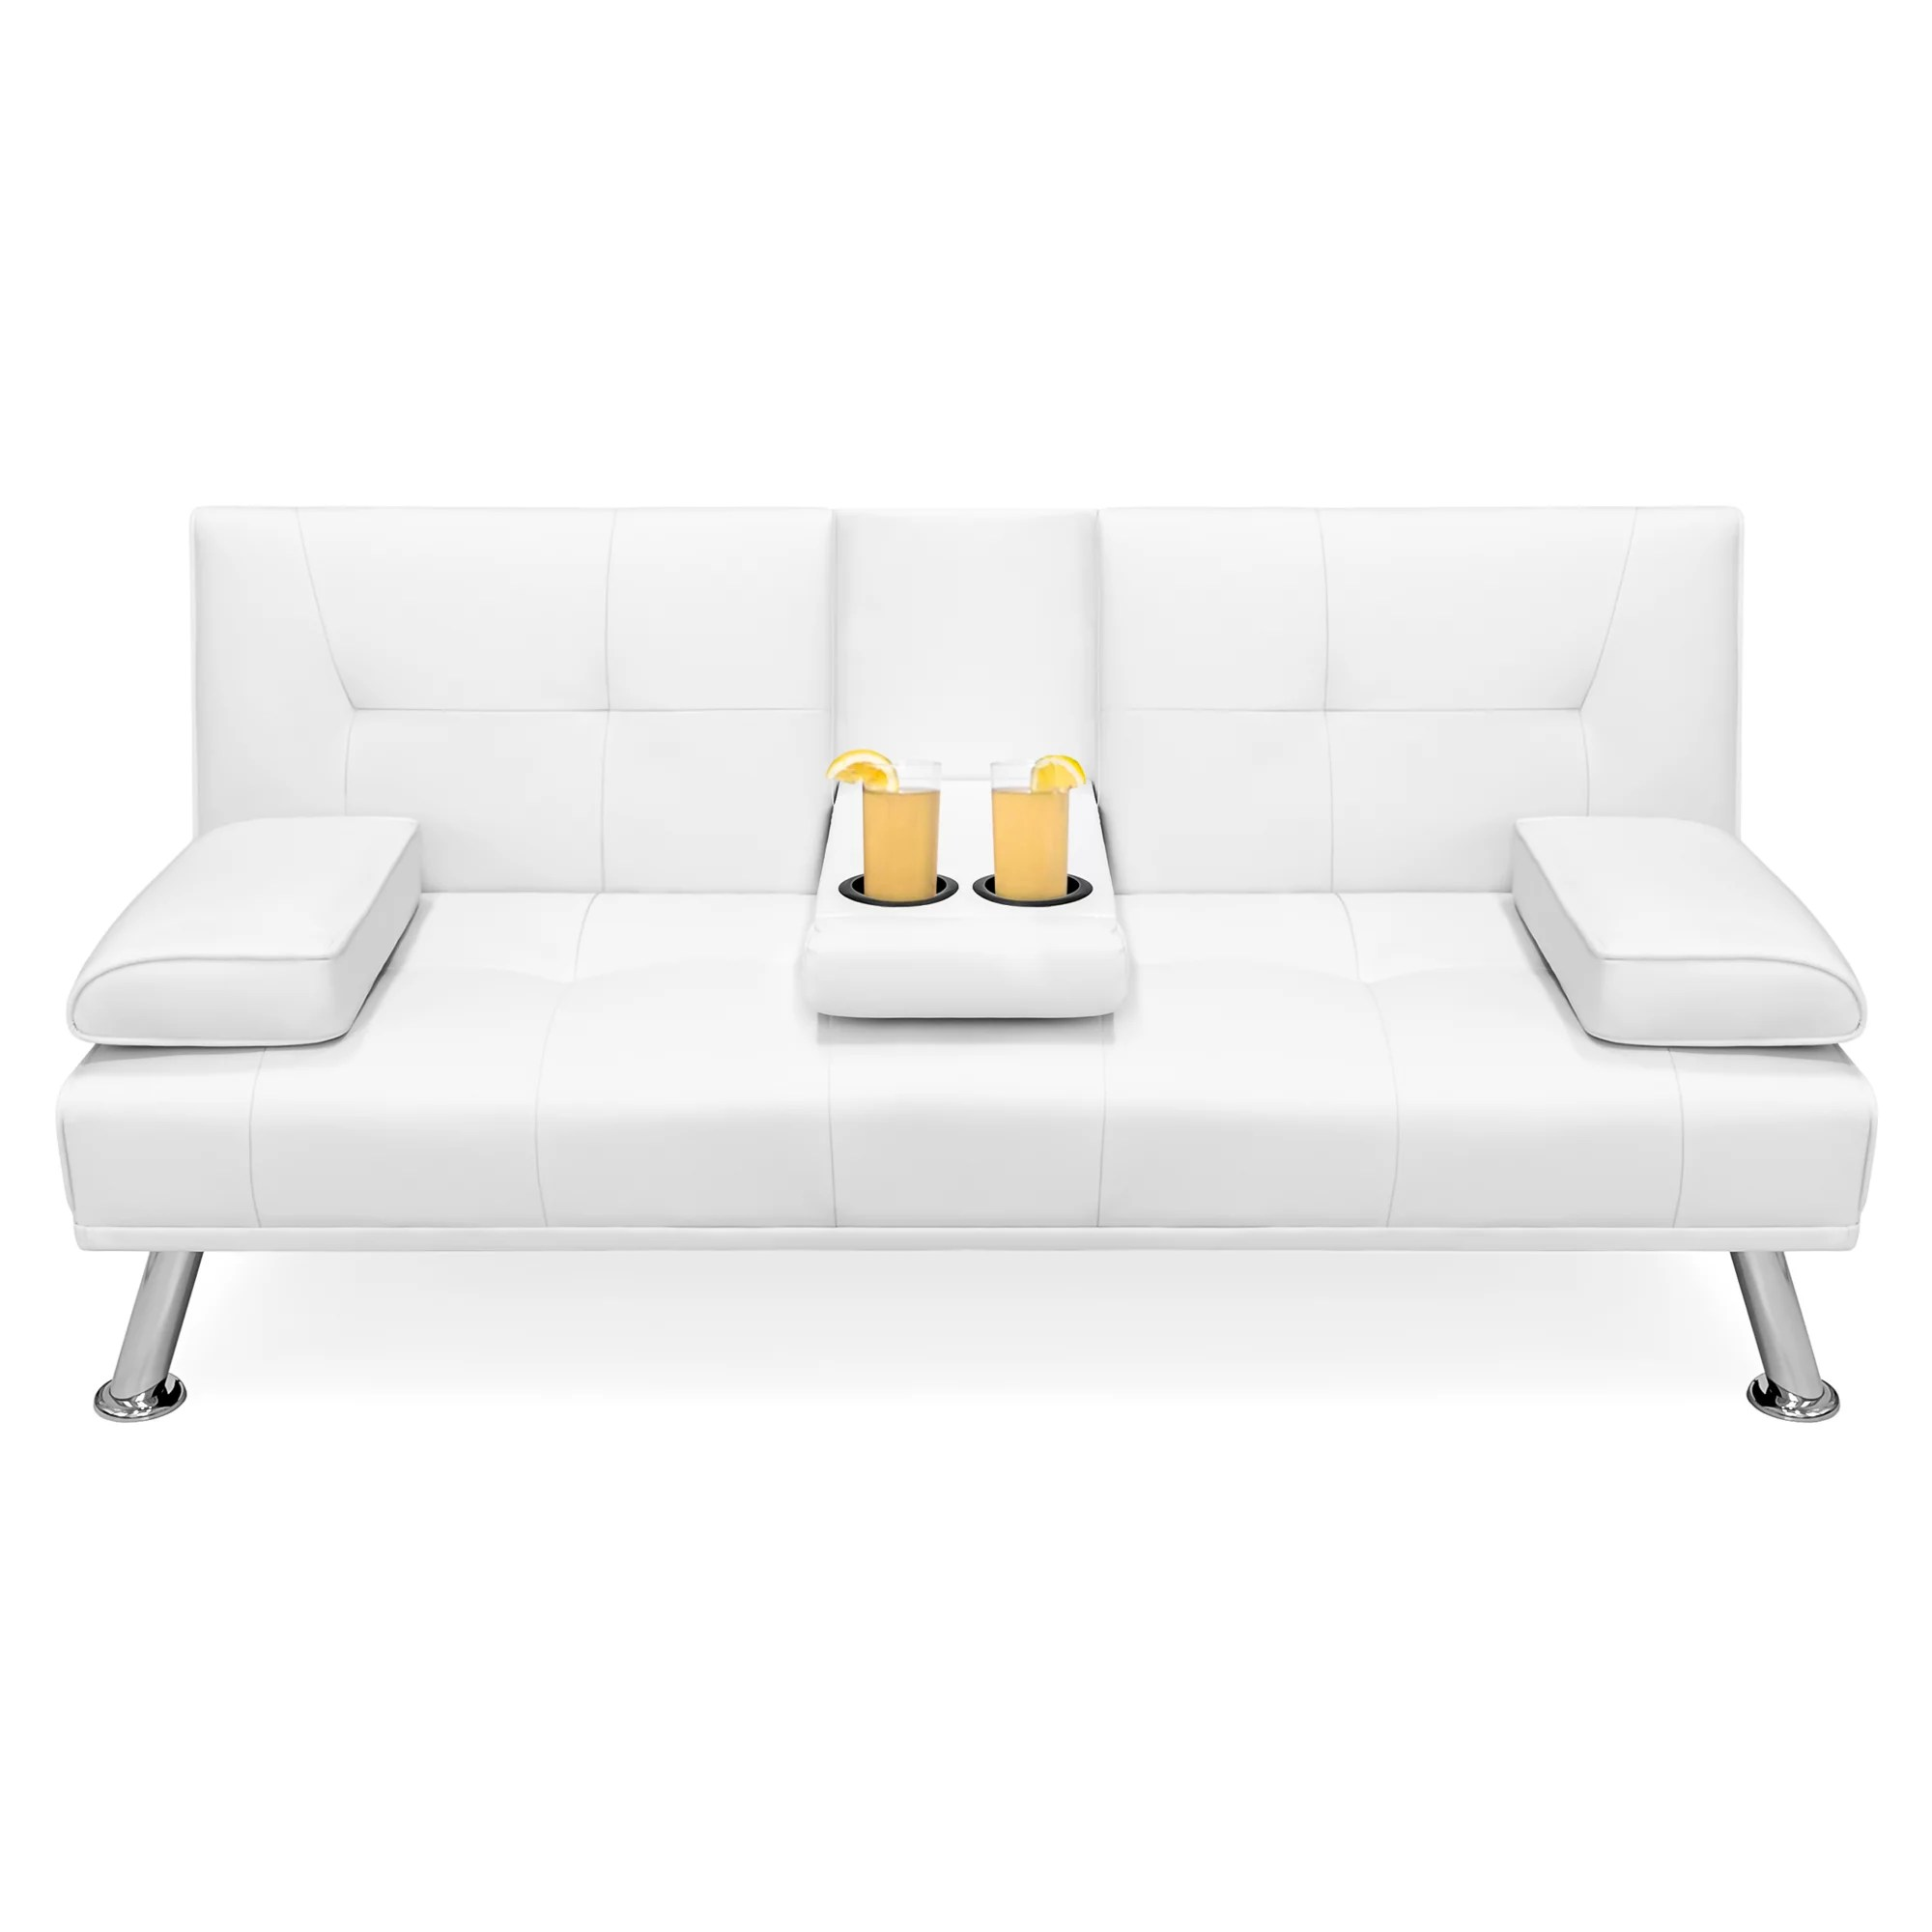 Details About Modern Futon Sofa Bed Faux Leather Fold Up Down Recliner Couch W Cup Holders